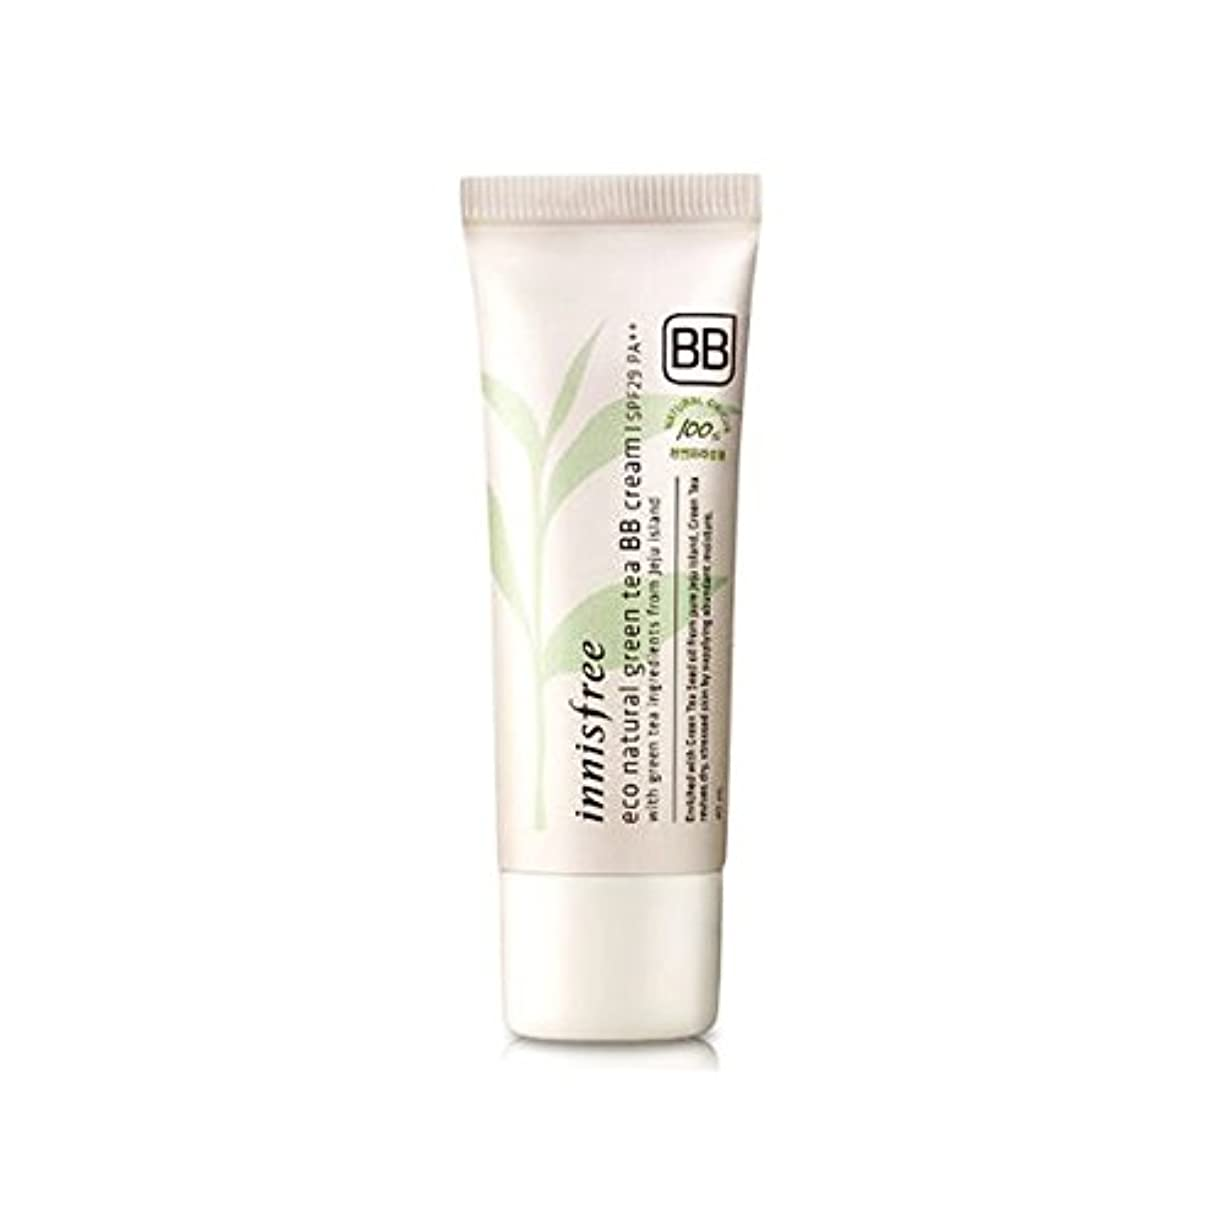 [イニスフリー]Innisfree エコ·ナチュラル緑茶のBBクリームSPF29 PA ++(40ml) Innisfree Eco Natural Green Tea BB Cream SPF29PA++(40ml)...